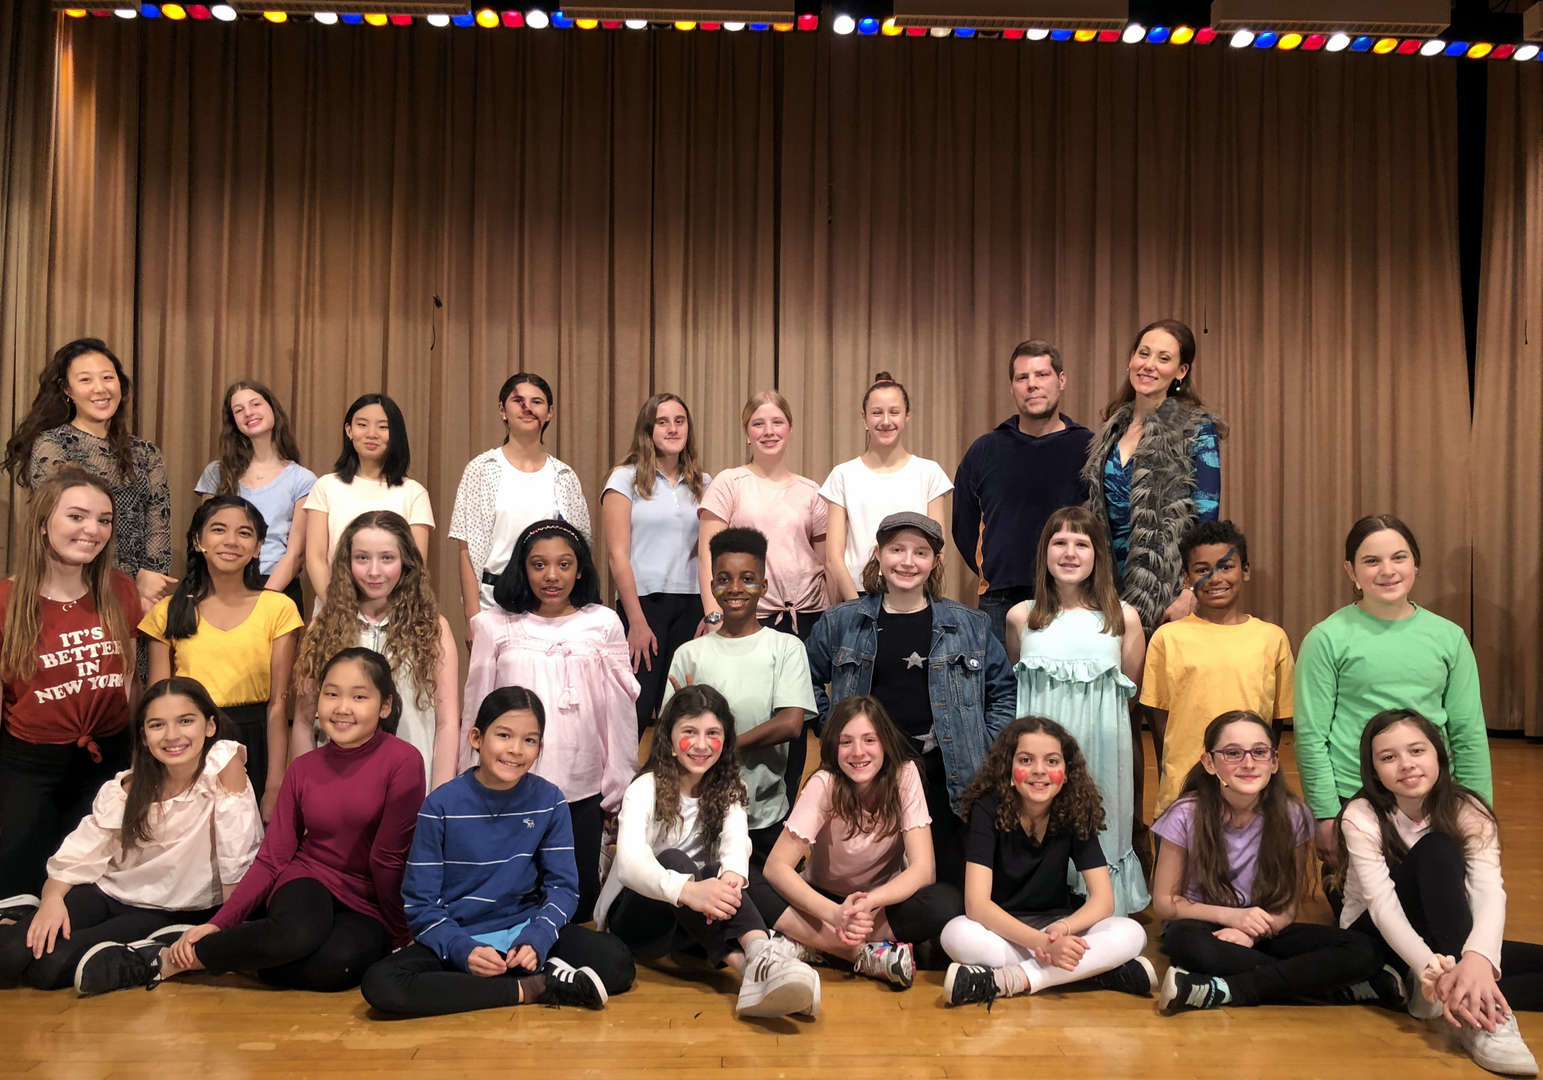 Photo of Pippin cast and crew - Spring Musical 2020